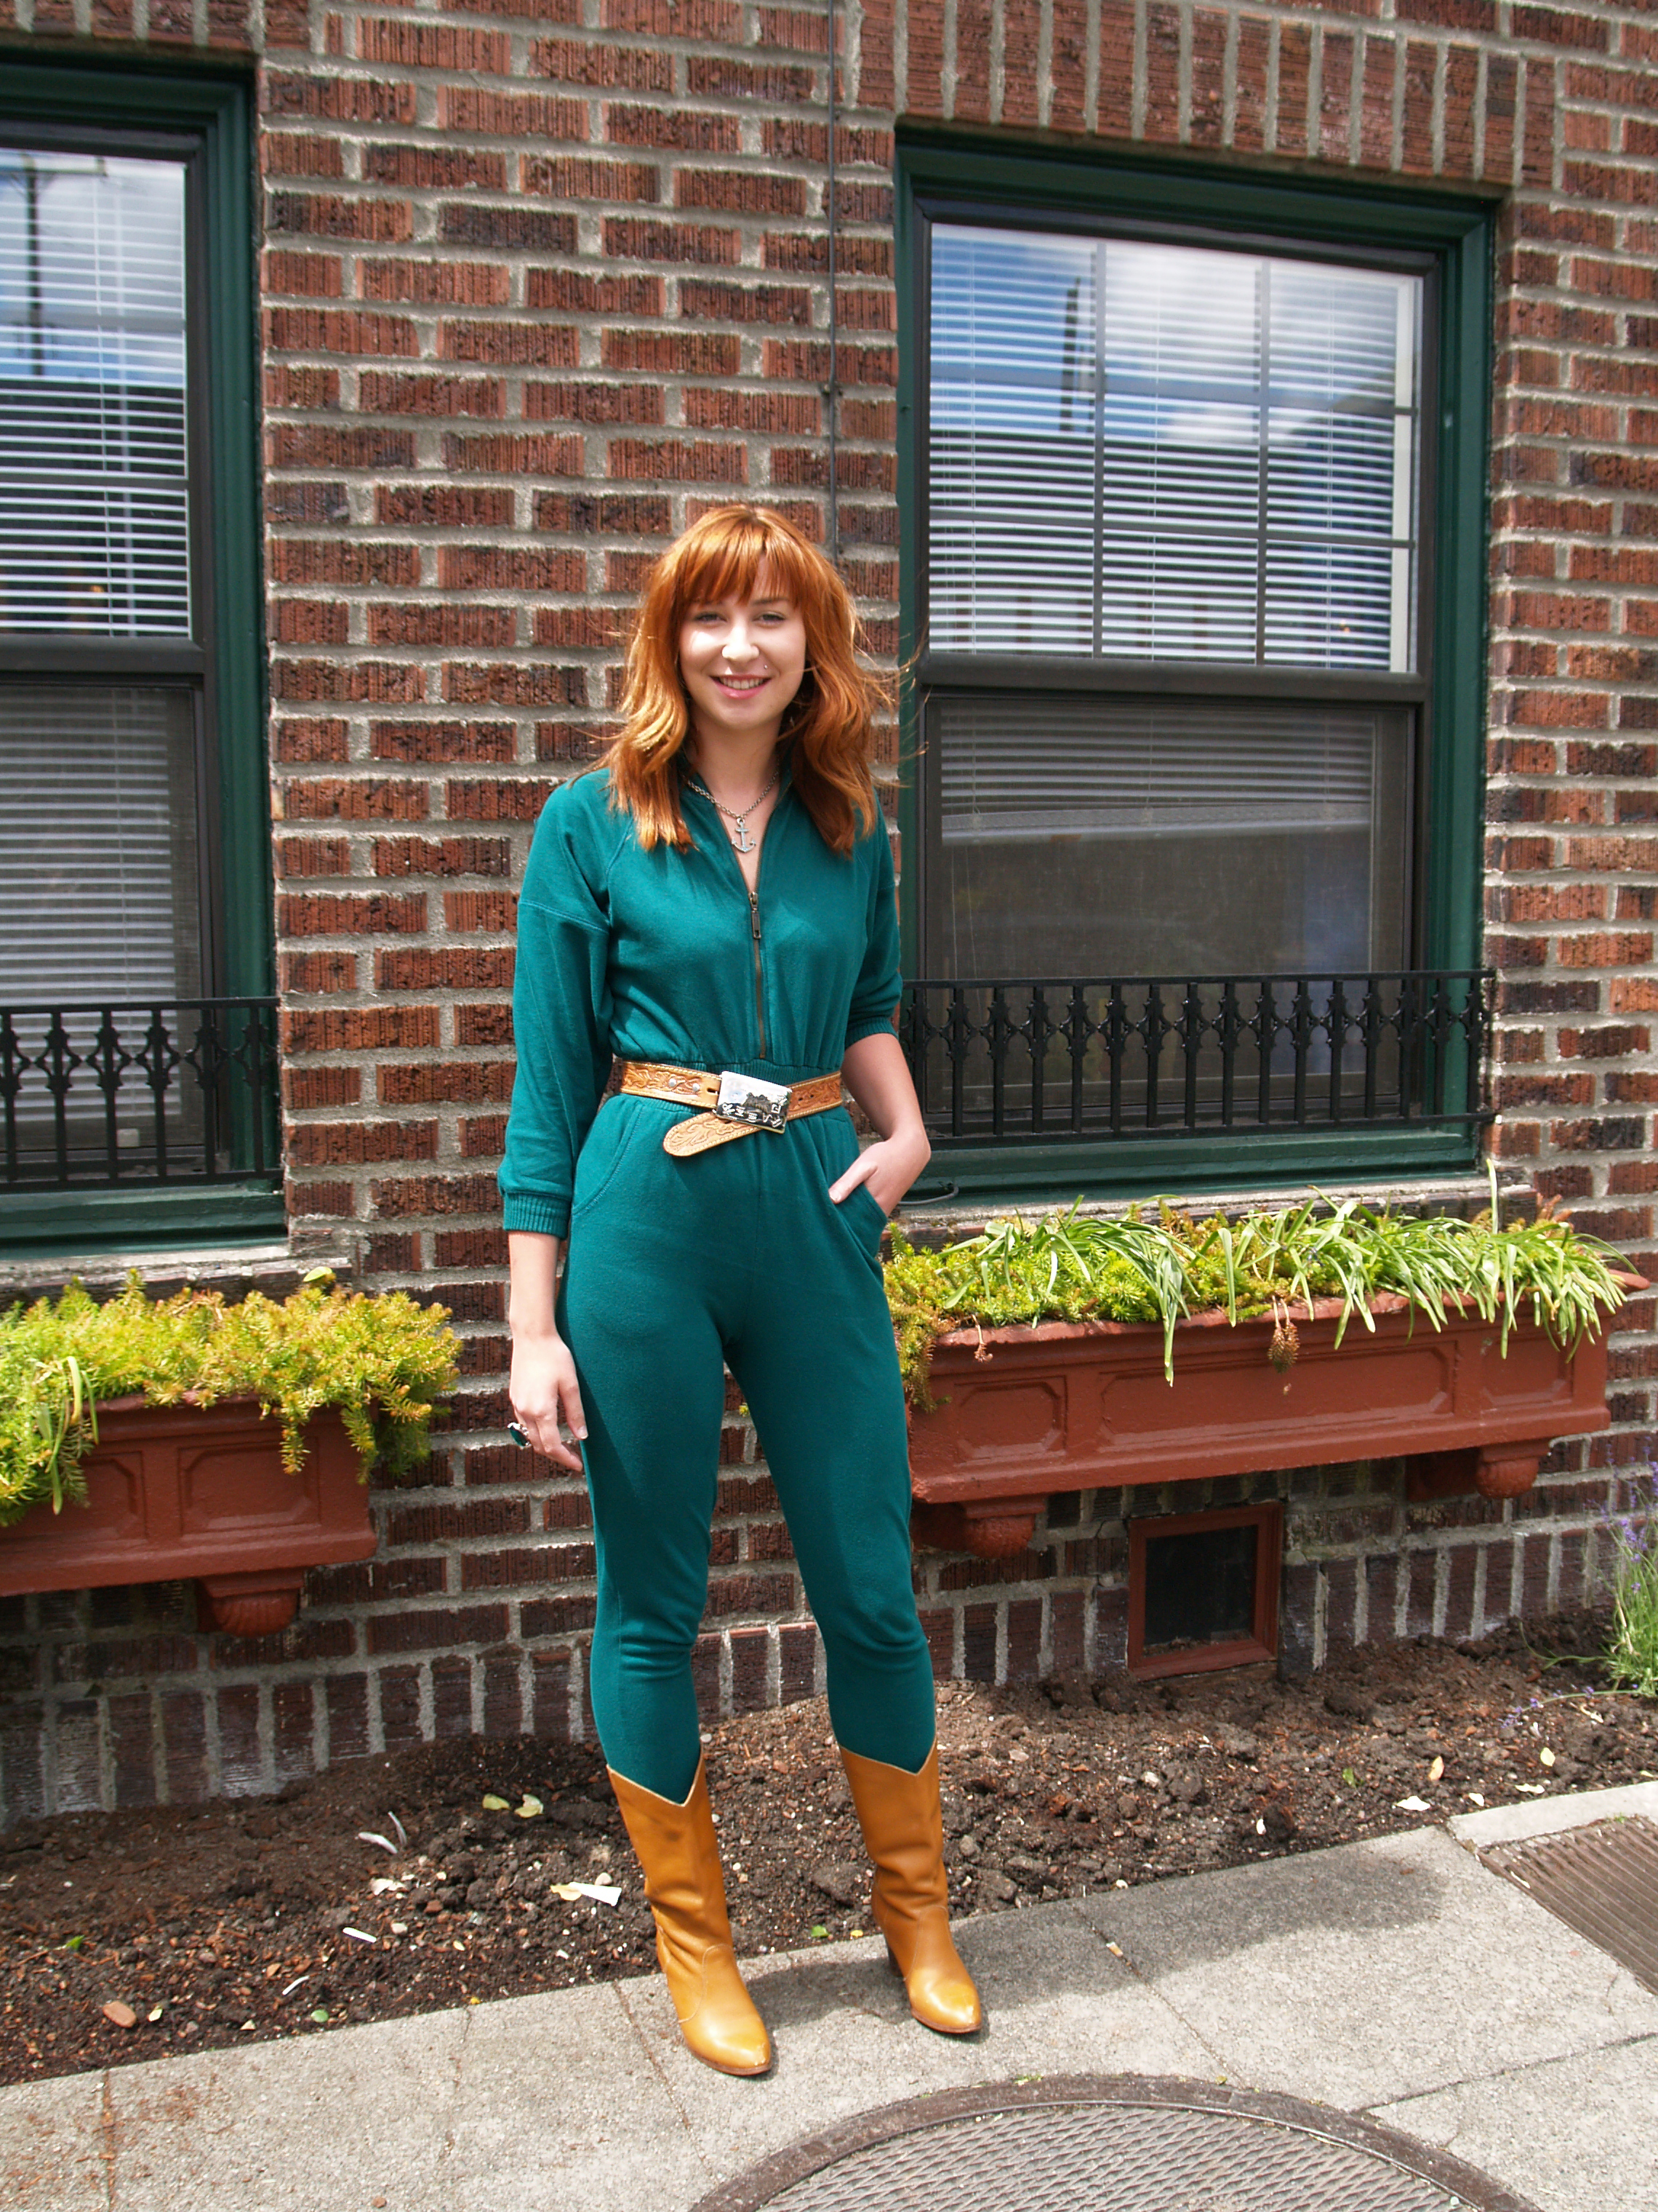 Thrift Store Fashion Finds | The Emerald Palate